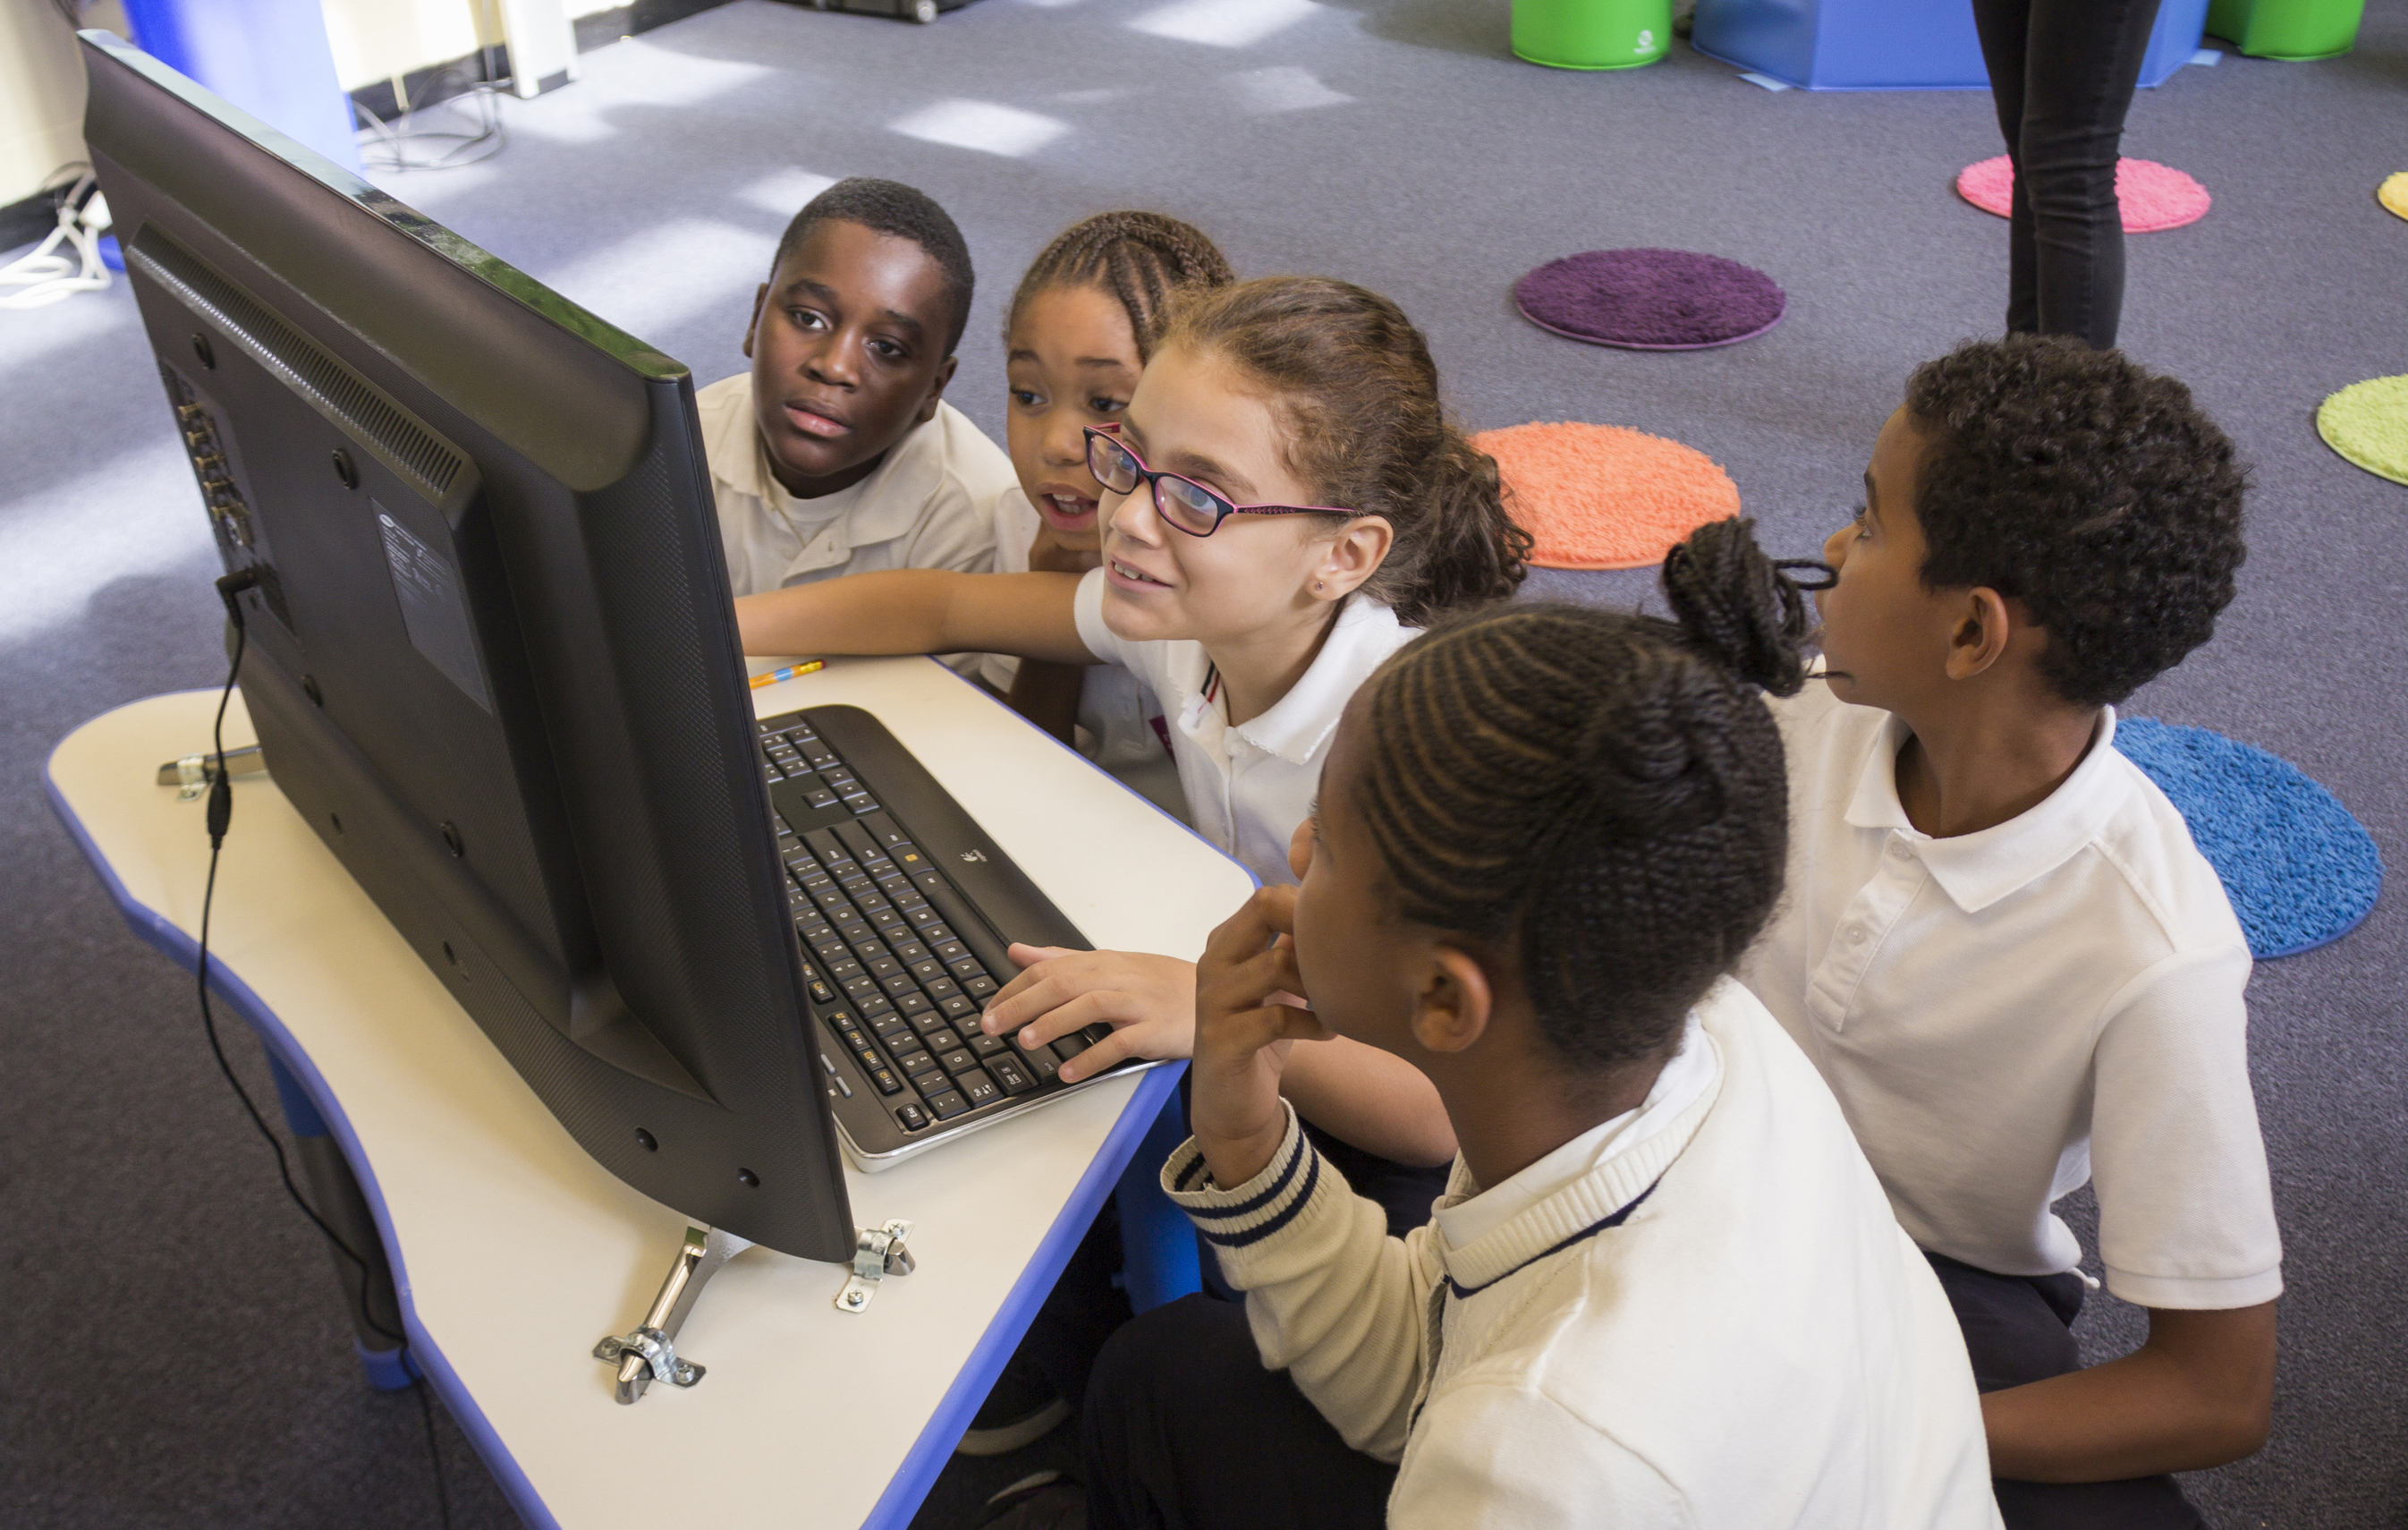 At SOLE NYC, a learning lab inside a public school in Harlem, students participate in SOLE sessions once a week. Photo: Dian Lofton/TED